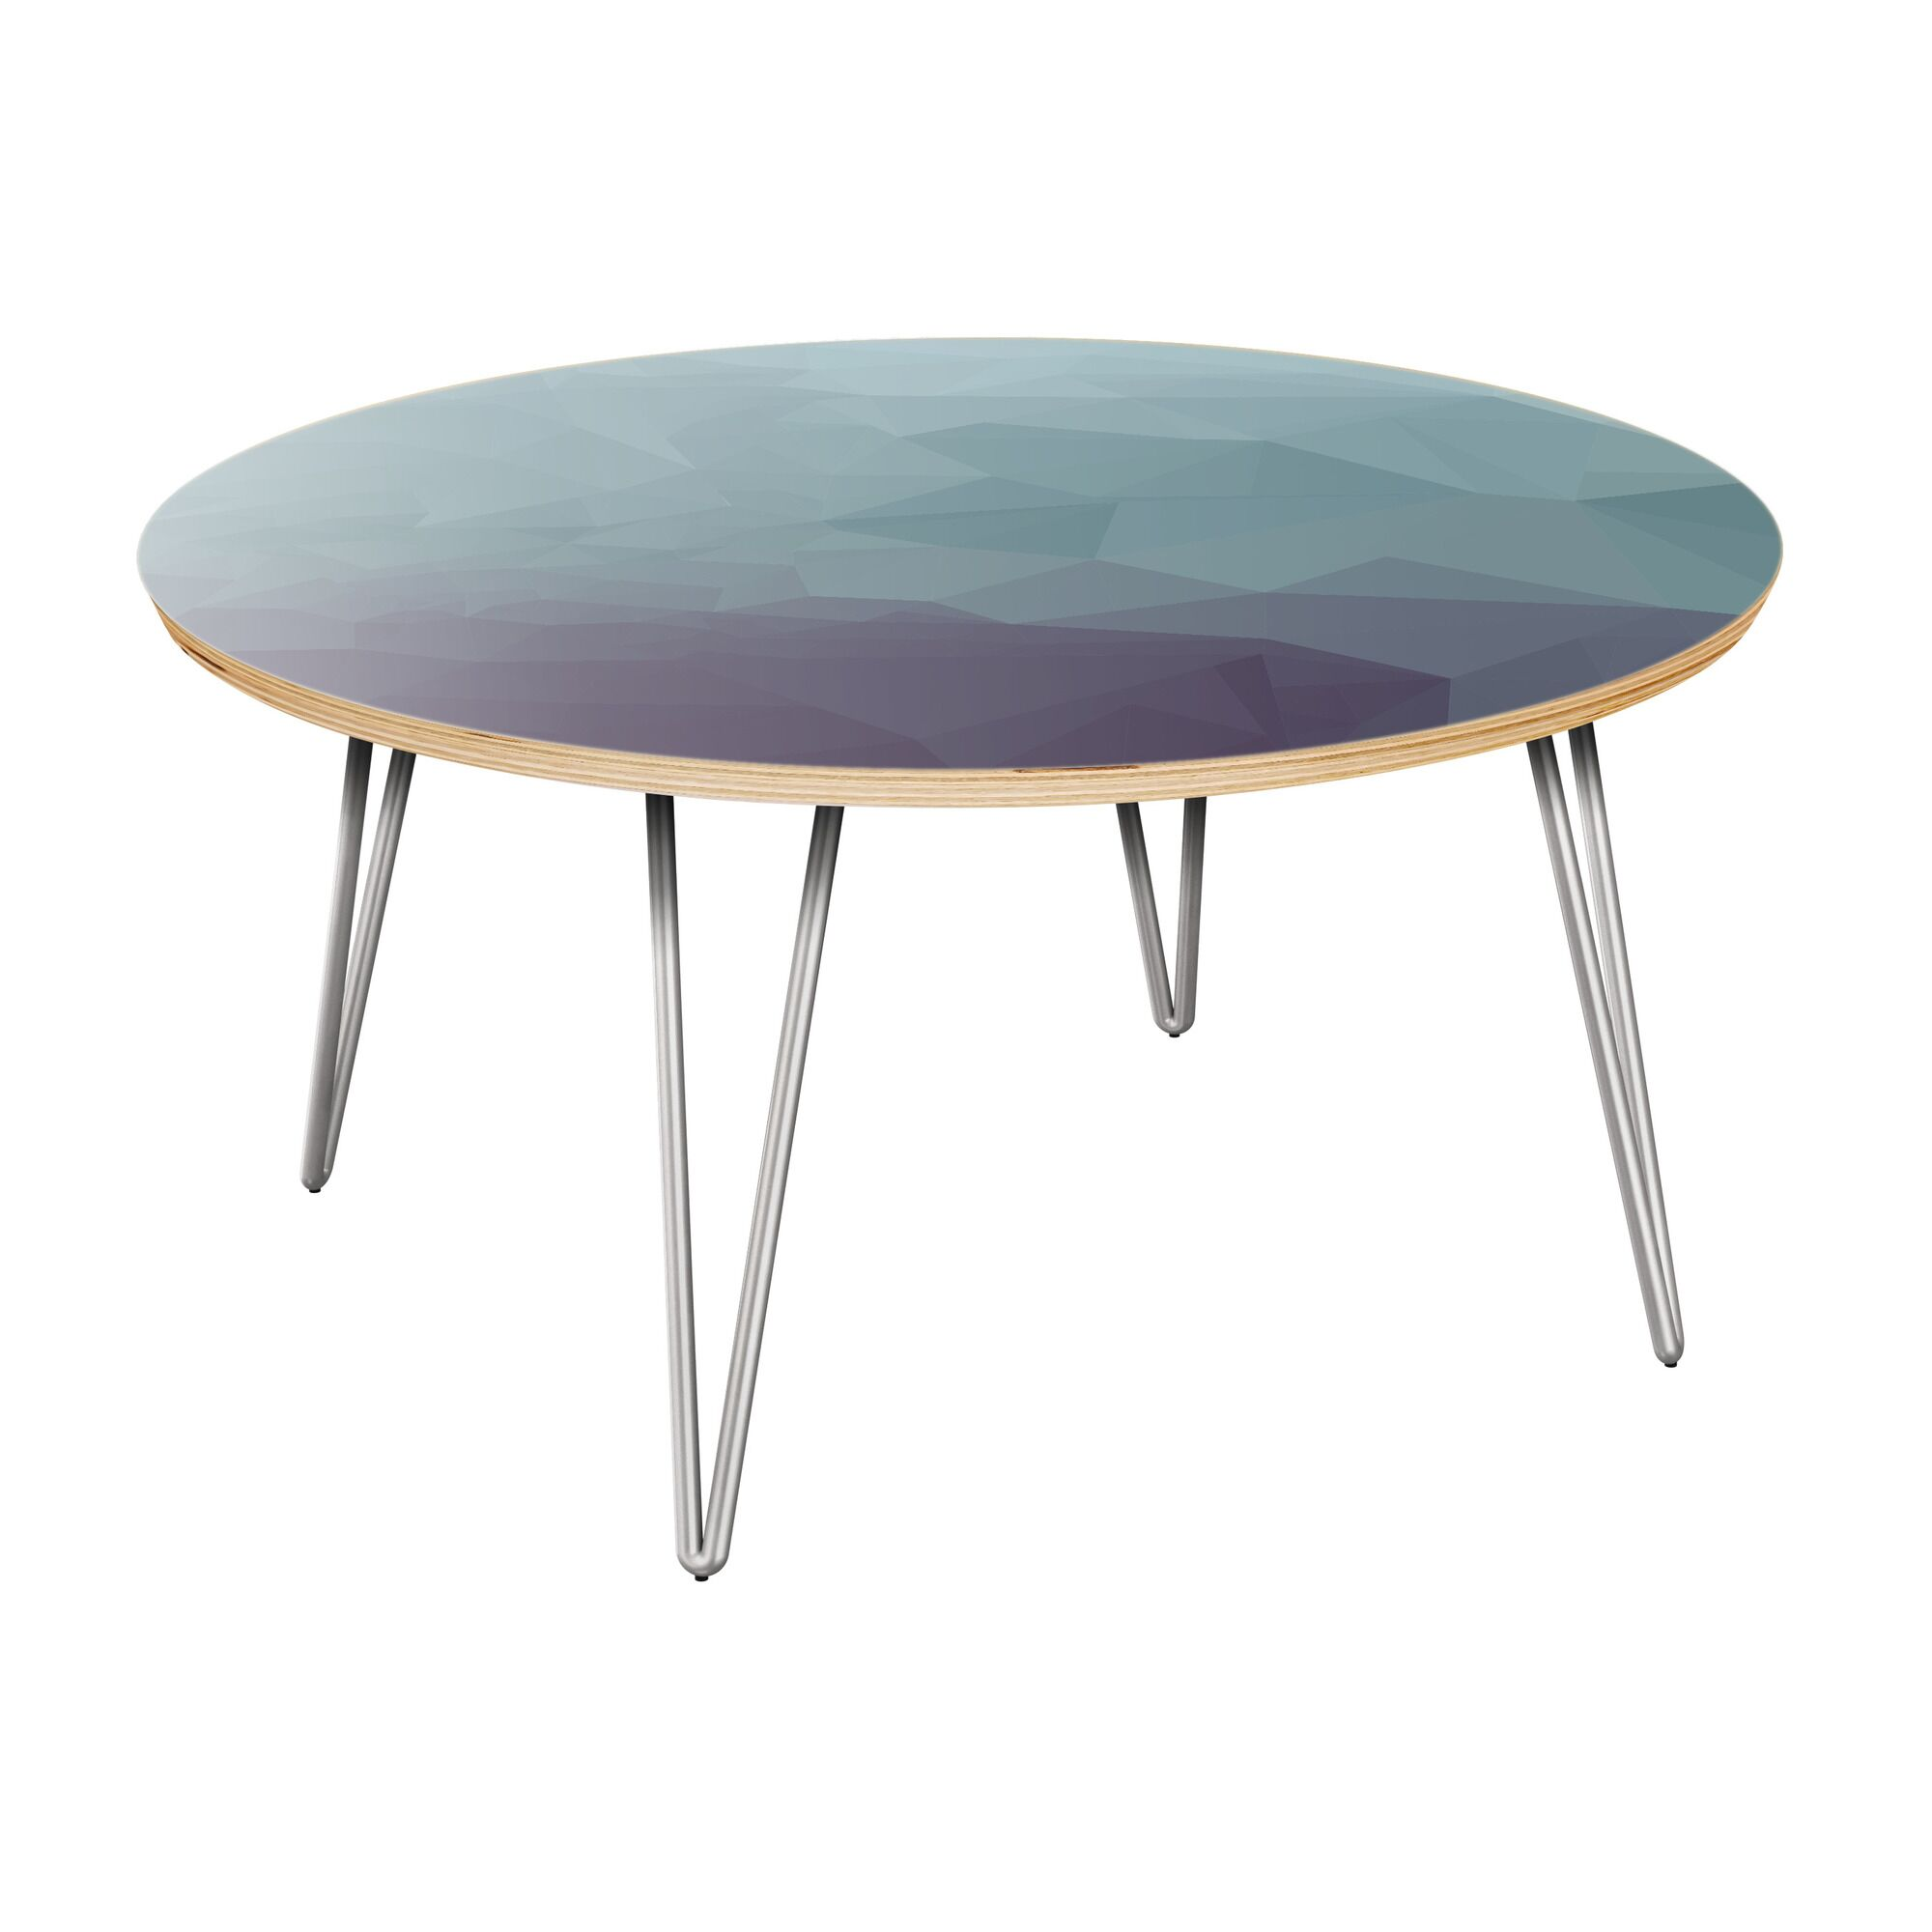 Herdon Coffee Table Table Top Boarder Color: Natural, Table Base Color: Chrome, Table Top Color: Gray/Black